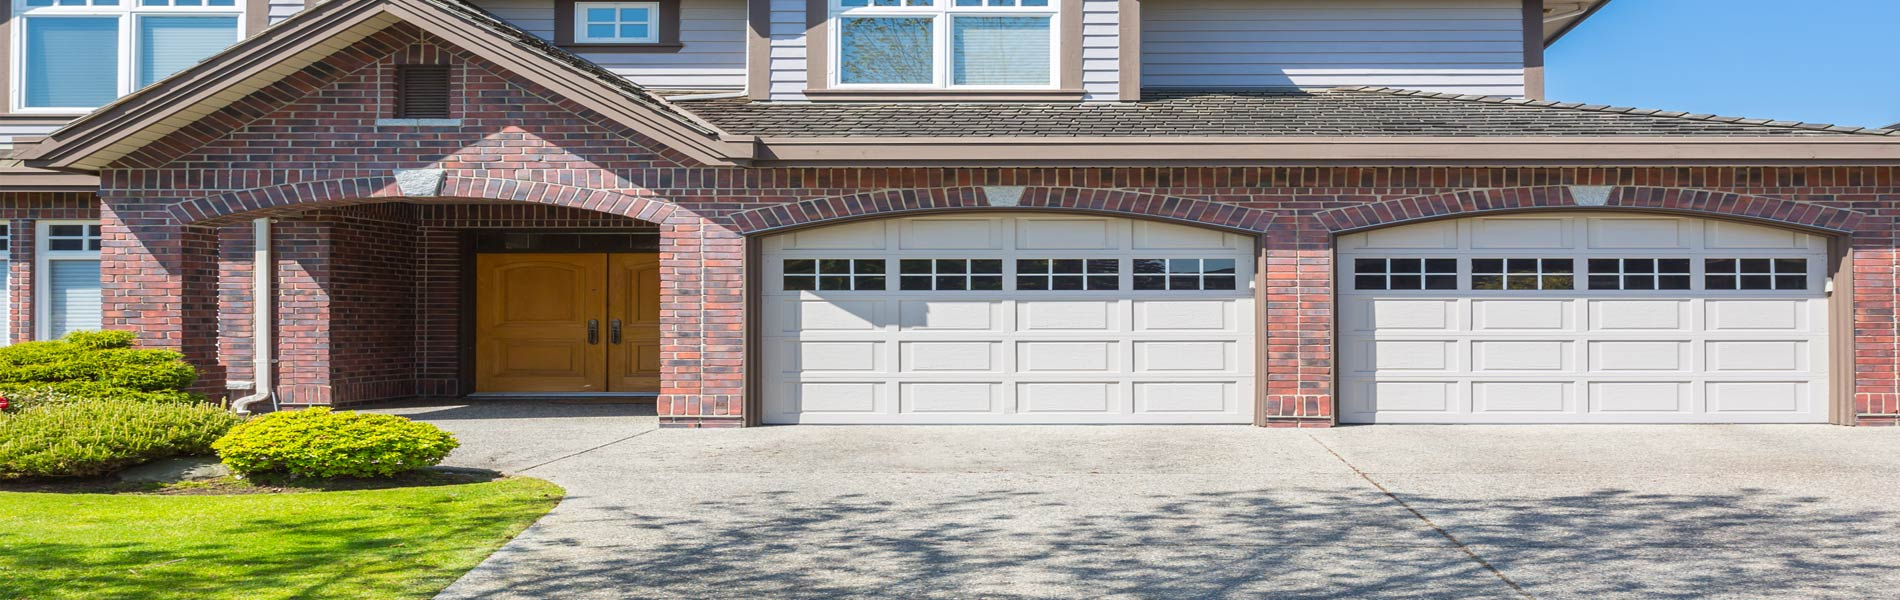 HighTech Garage Door Service, Calimesa, CA 909-389-5020